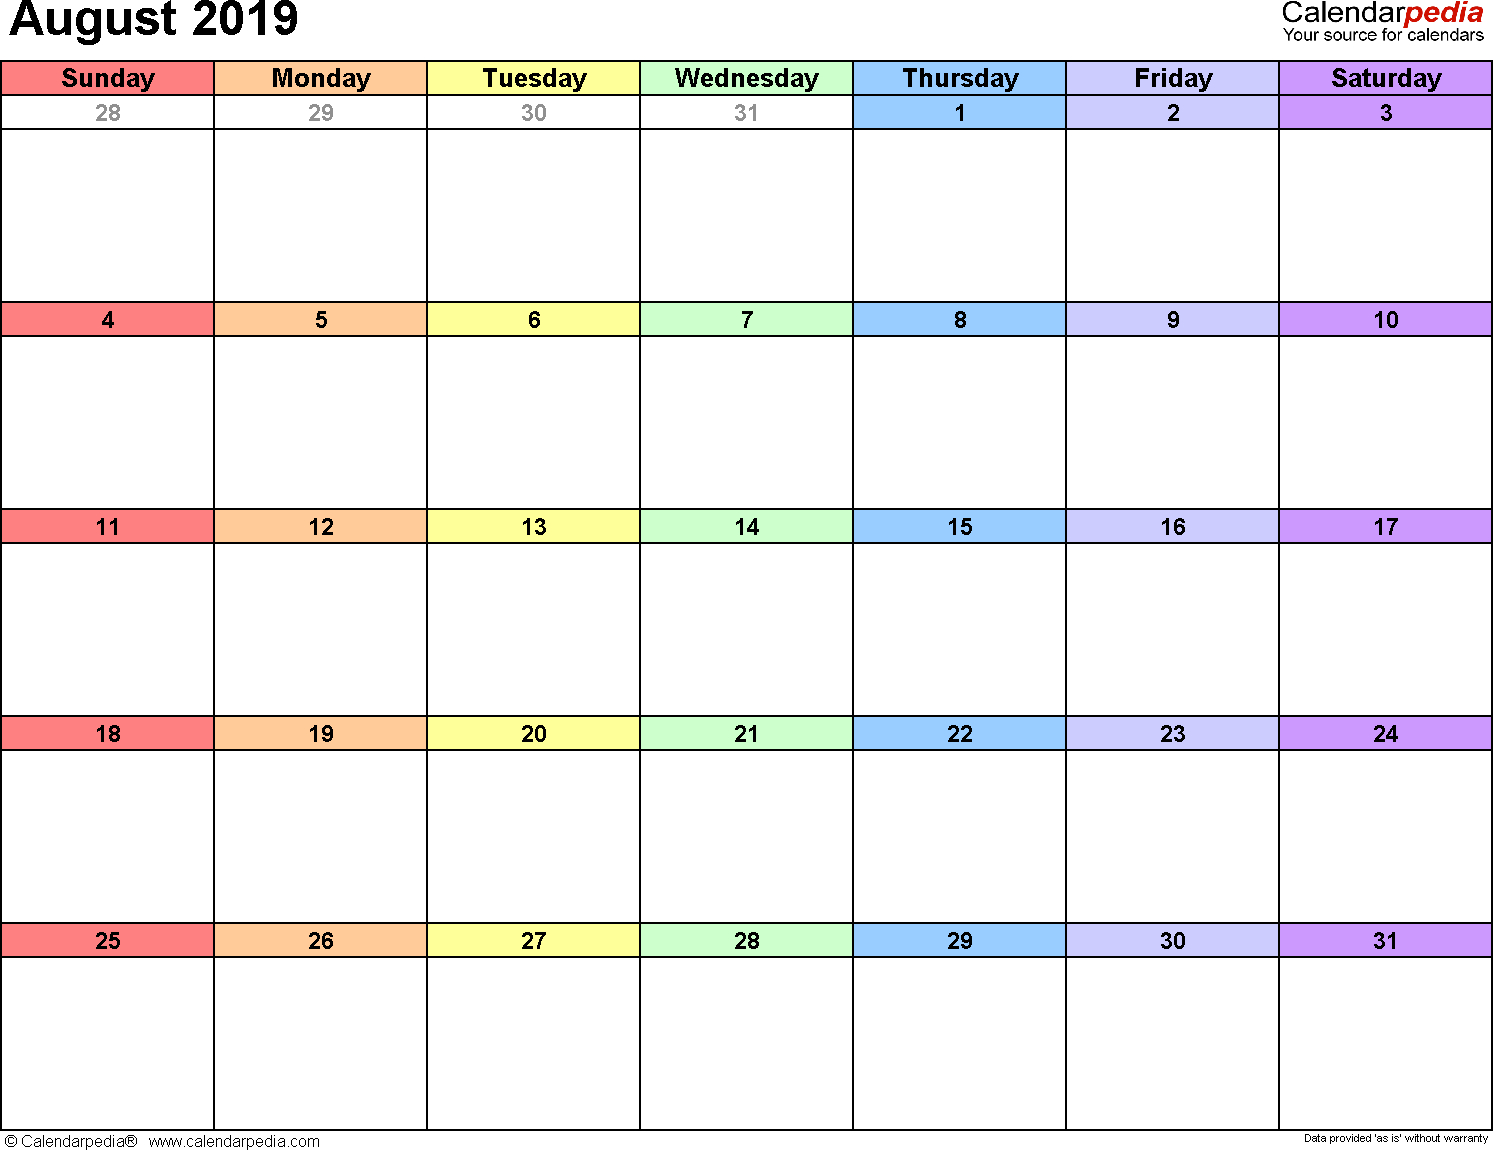 Calendarpedia - Your Source For Calendars within Print Blank Workday Calendar For August